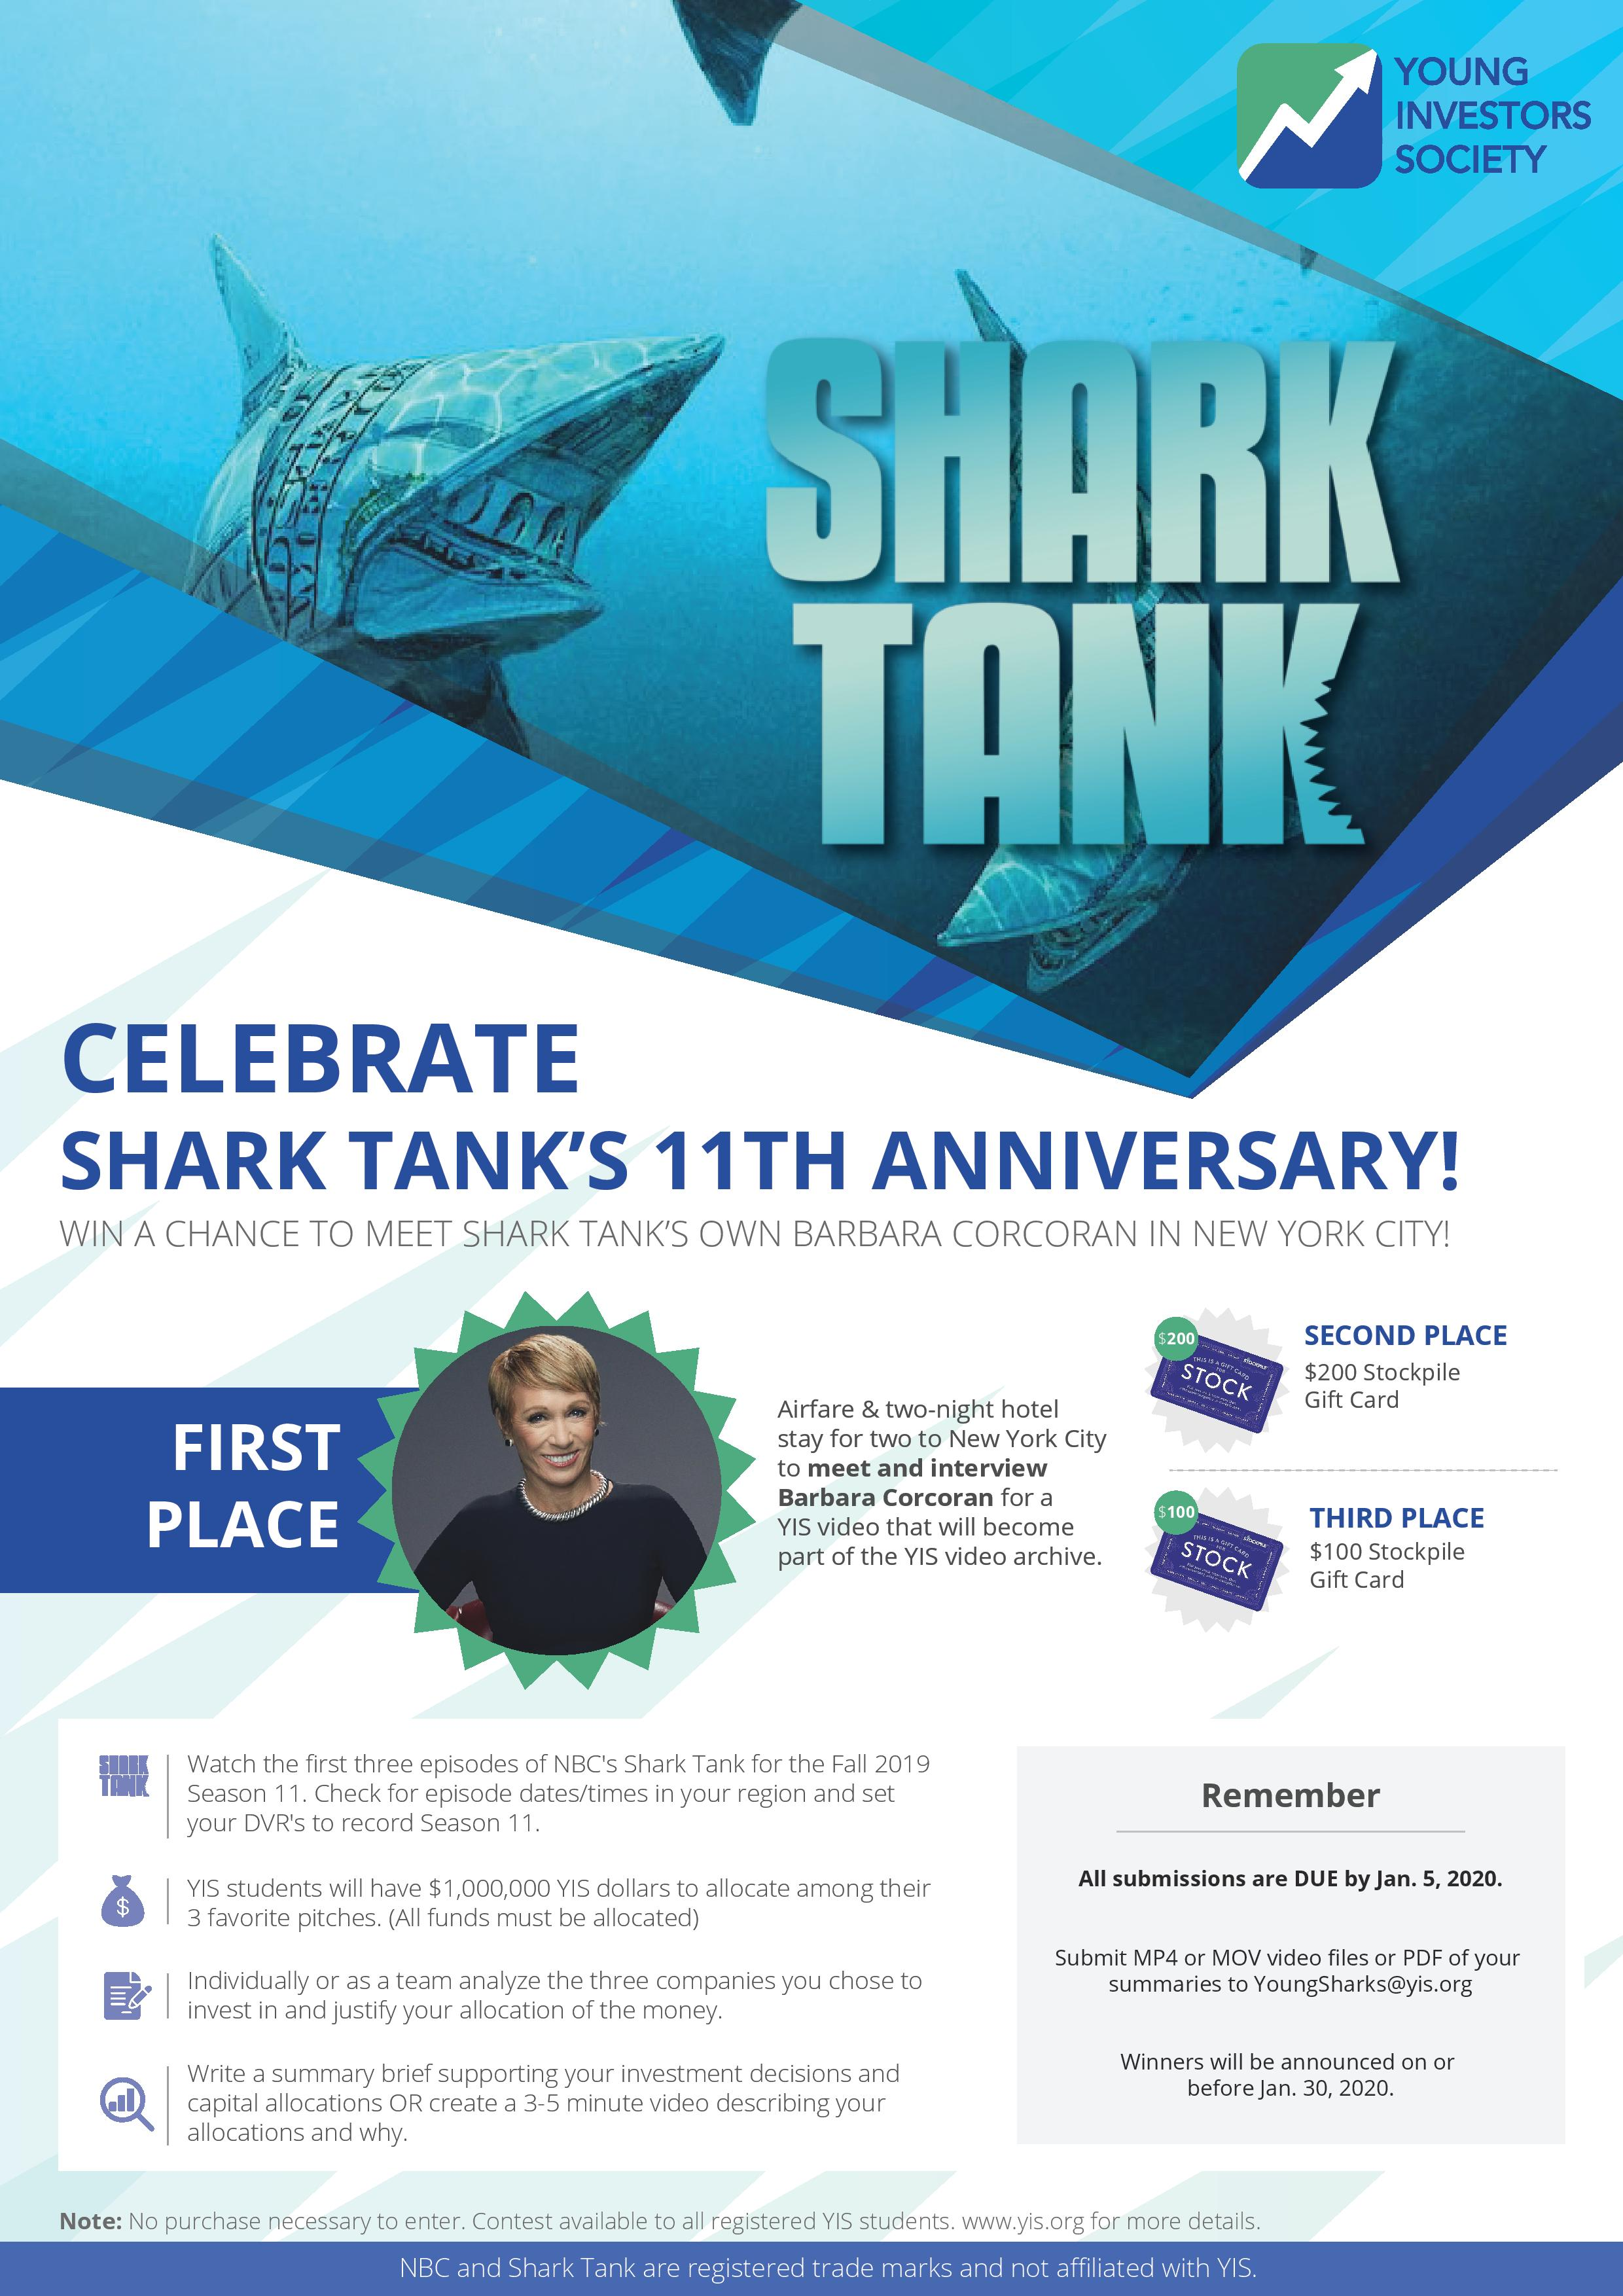 YIS Shark Tank Contest: All Submissions DUE by Jan. 25th!